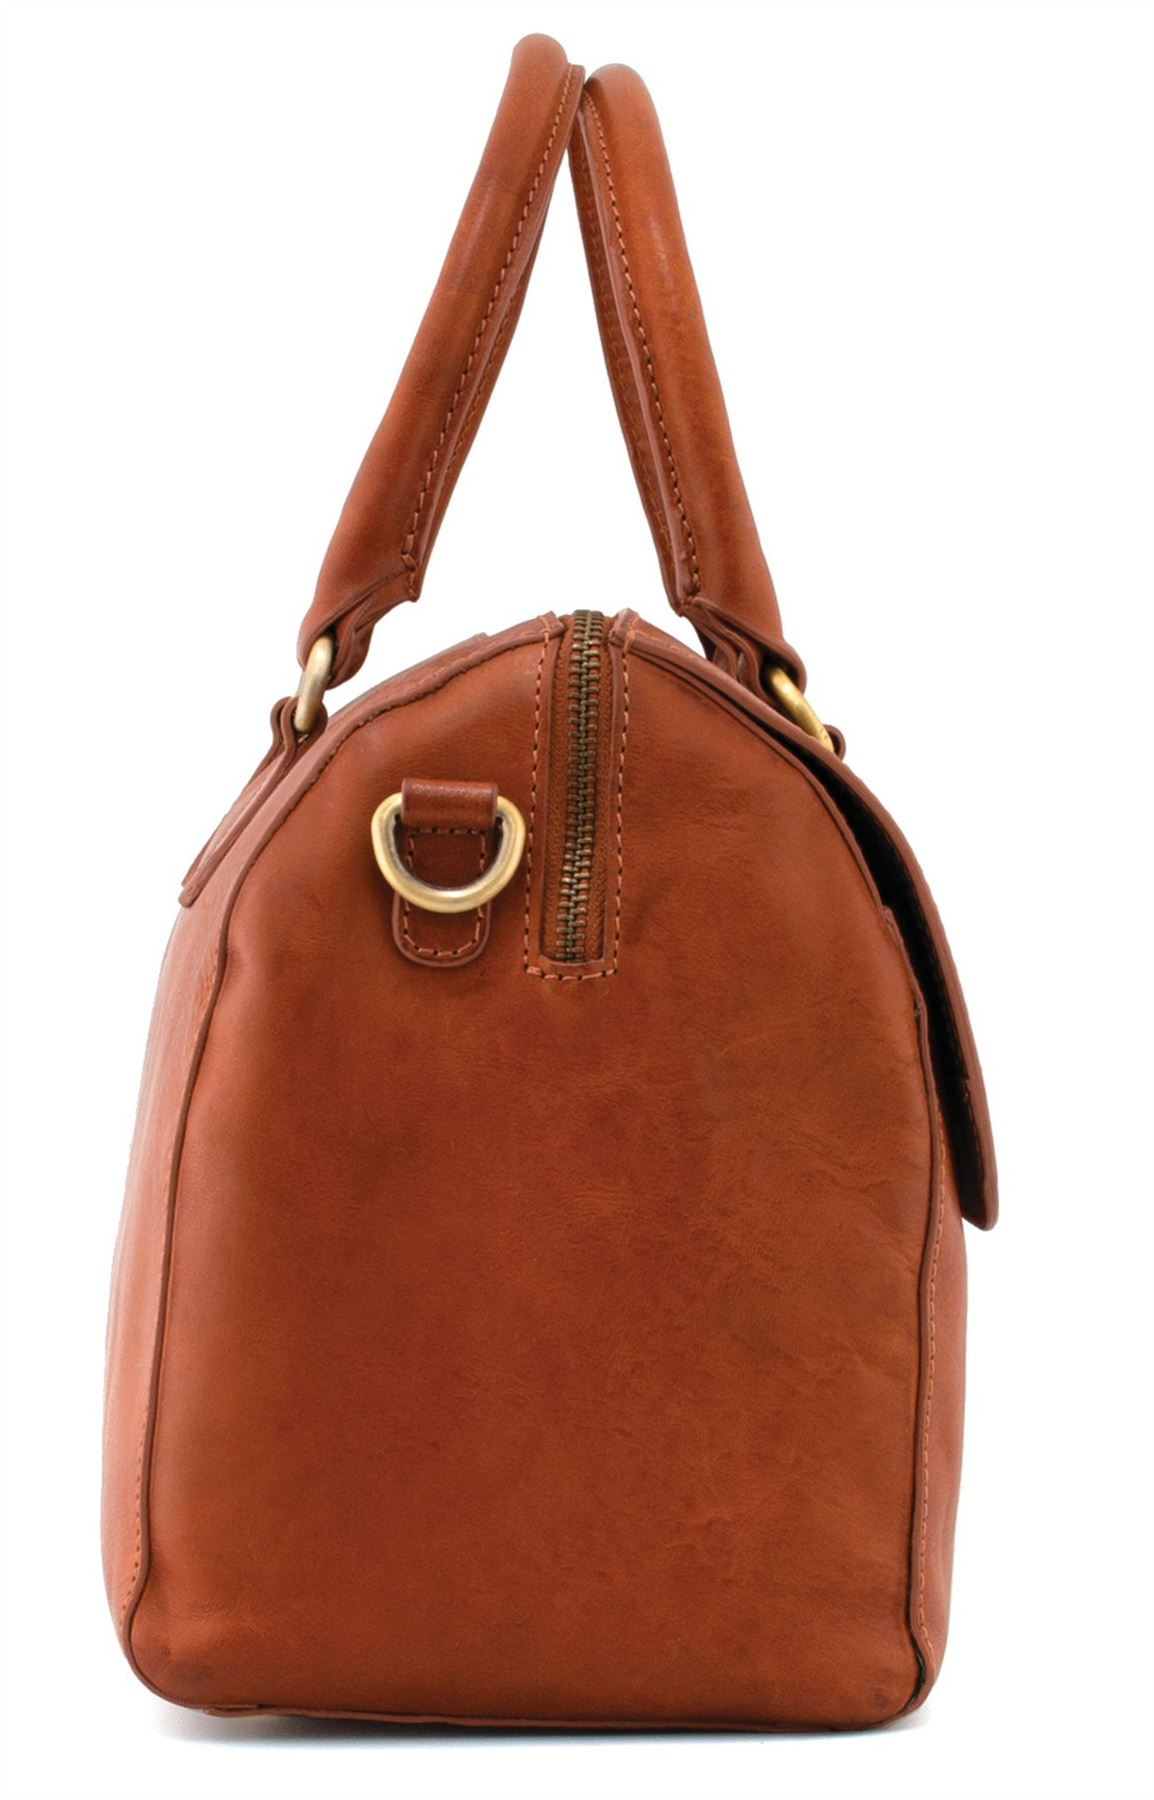 Tumble & Hide DALTON Italian Vegetable Tanned Leather Tote Bag 8106_THV